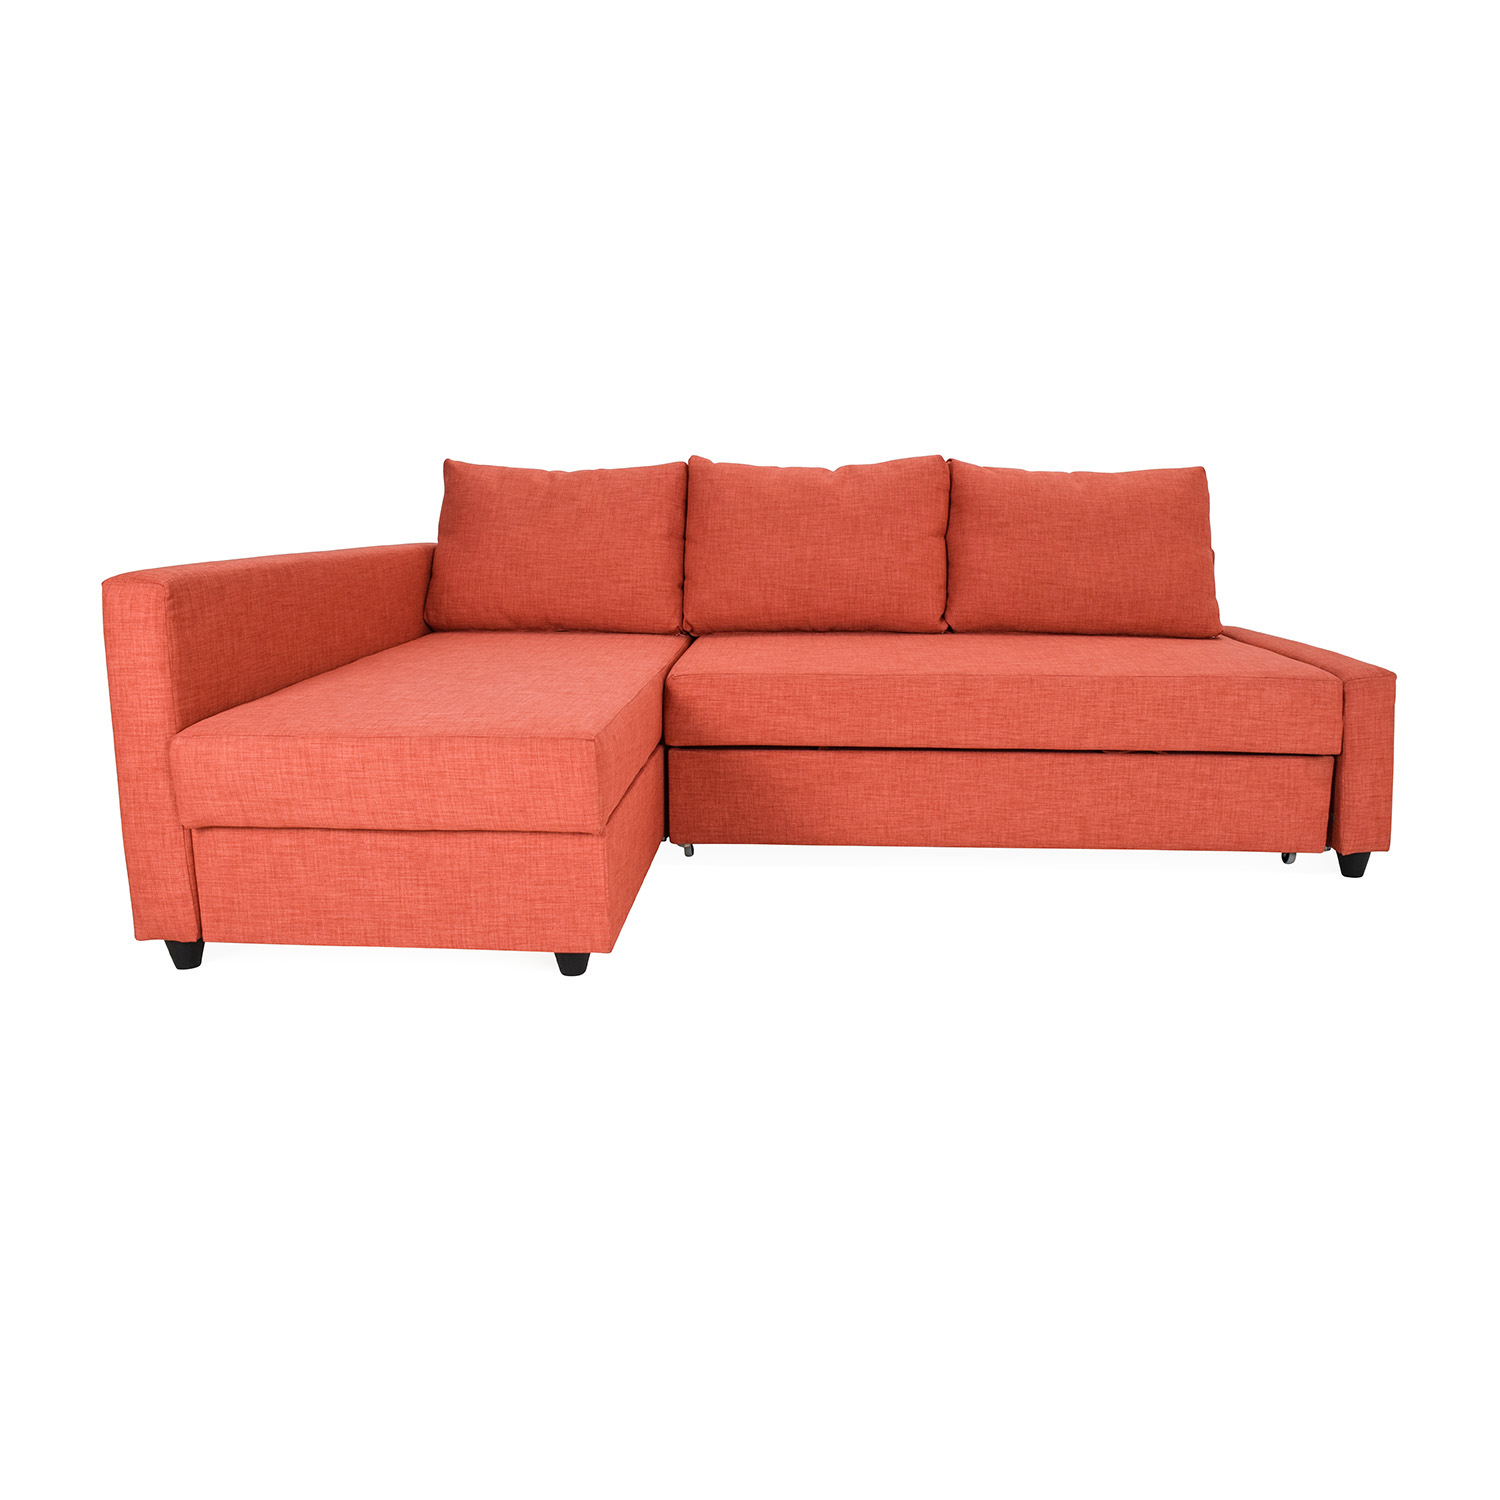 Bettsofa Ikea Friheten 49 Off Ikea Friheten Sofa Bed With Chaise Sofas